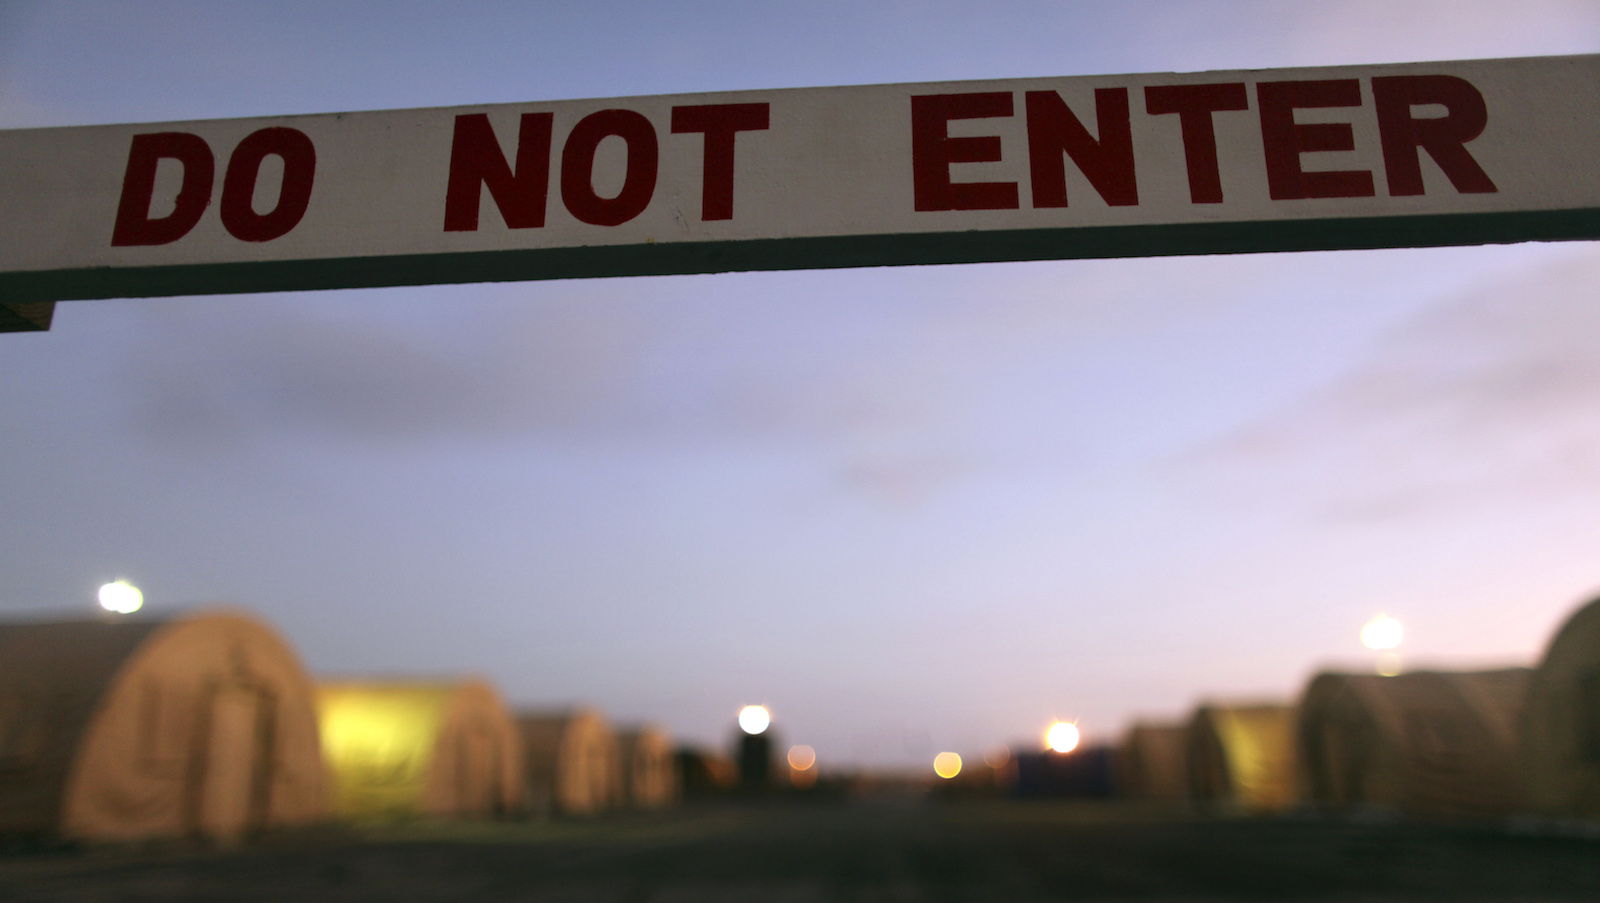 In this photo, reviewed by the U.S. Military, a sign marks a closed-off area, at Camp Justice, the location of the U.S. Military Commissions court for war crimes, at the U.S. Naval Base, in Guantanamo Bay, Cuba, January 19, 2009. Military judges in Guantanamo pressed forward Monday with hearings for five men accused of orchestrating the Sept. 11 attacks and for a Canadian accused of killing a U.S. soldier.    REUTERS/Brennan Linsley/Pool    (CUBA) - RTR23LPB